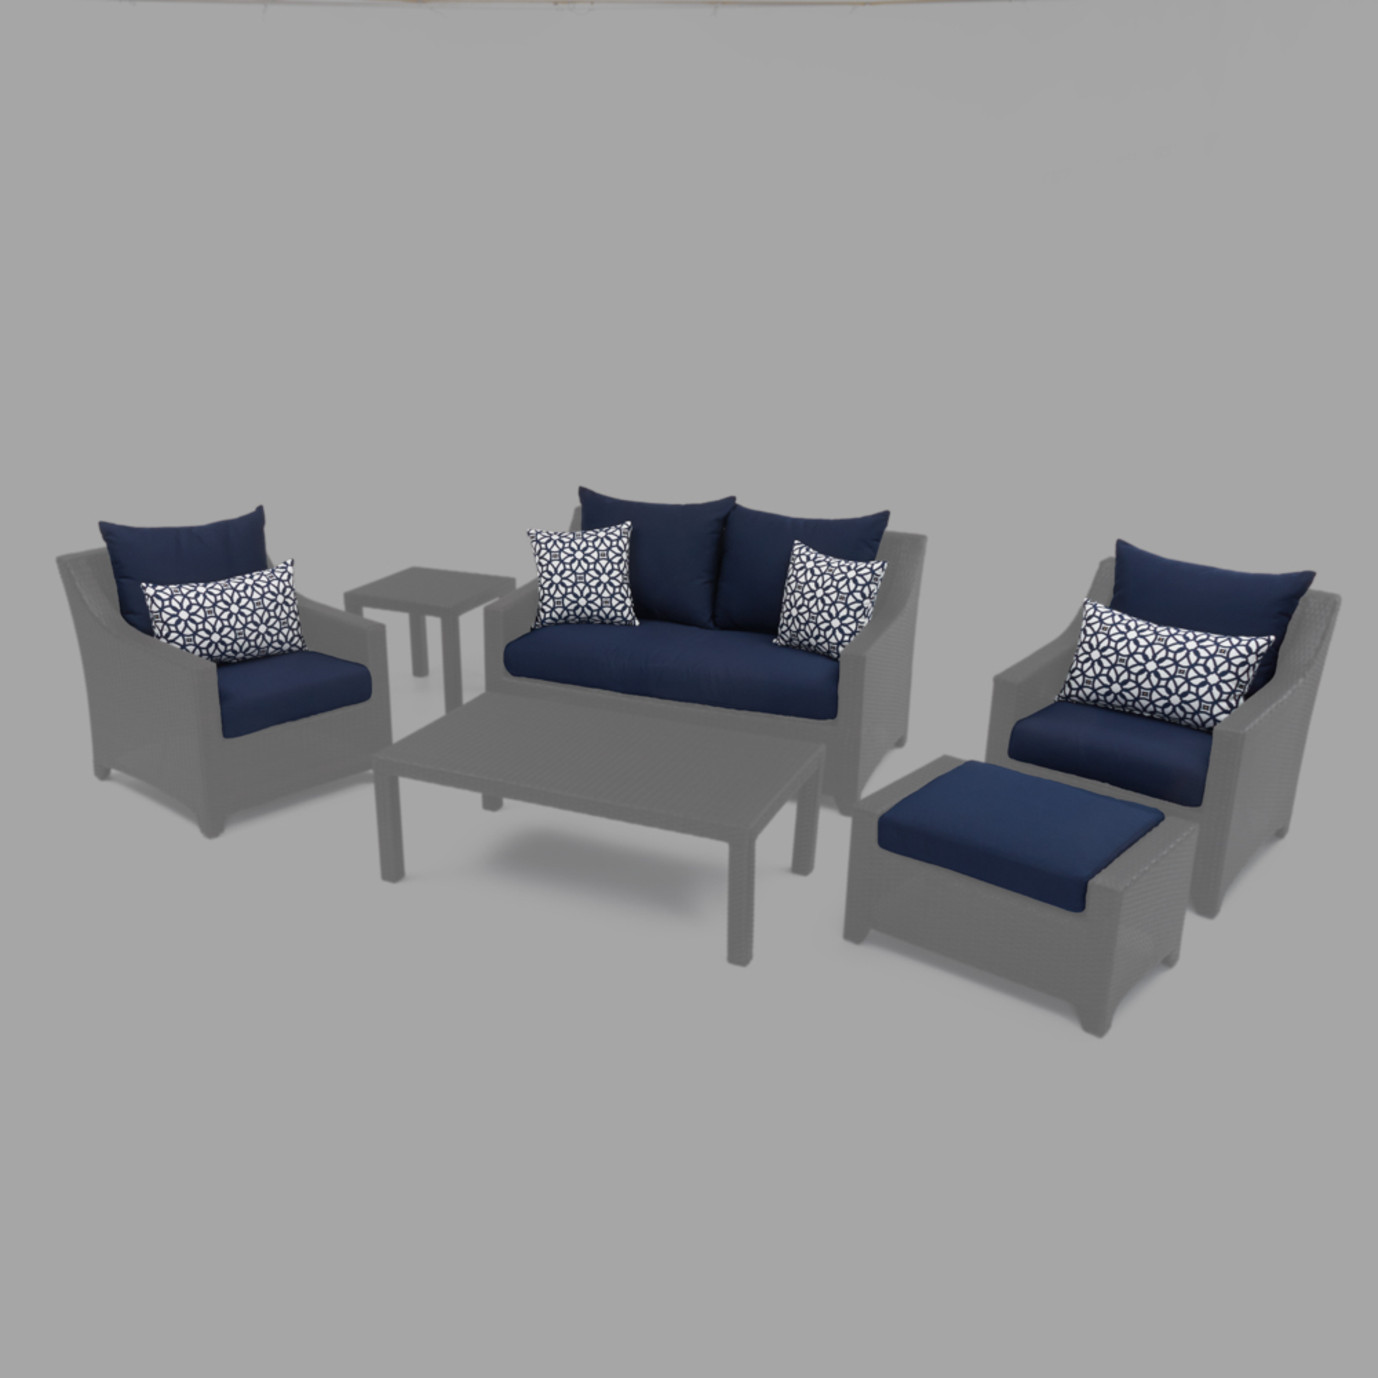 Modular Outdoor 6pc Love Cushion Cover Set - Navy Blue